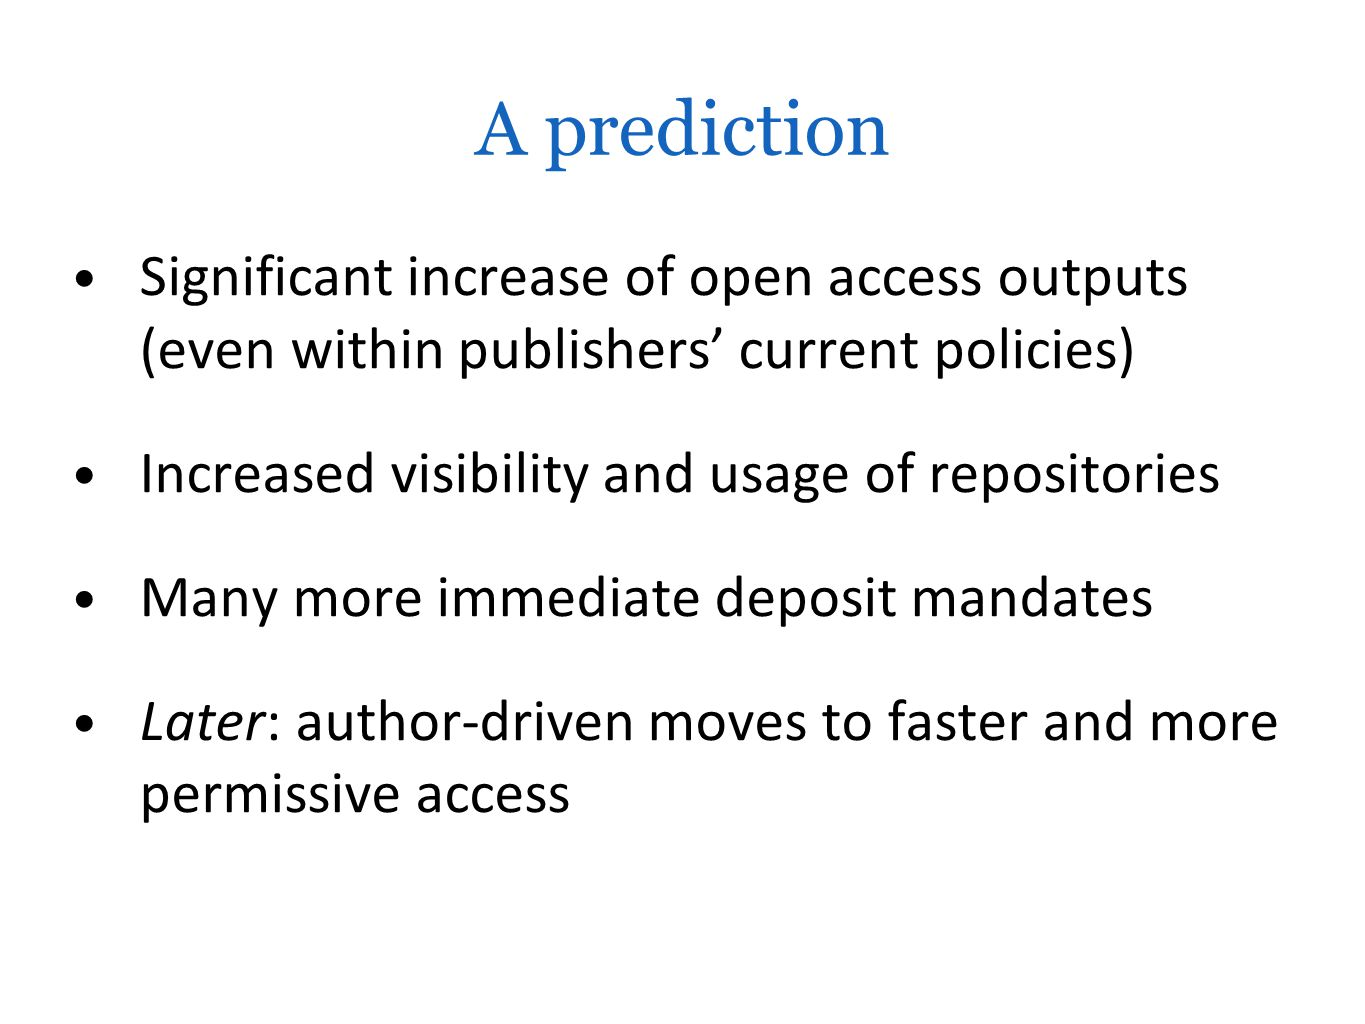 A prediction Significant increase of open access outputs (even within publishers' current policies) Increased visibility and usage of repositories Many more immediate deposit mandates Later: author-driven moves to faster and more permissive access